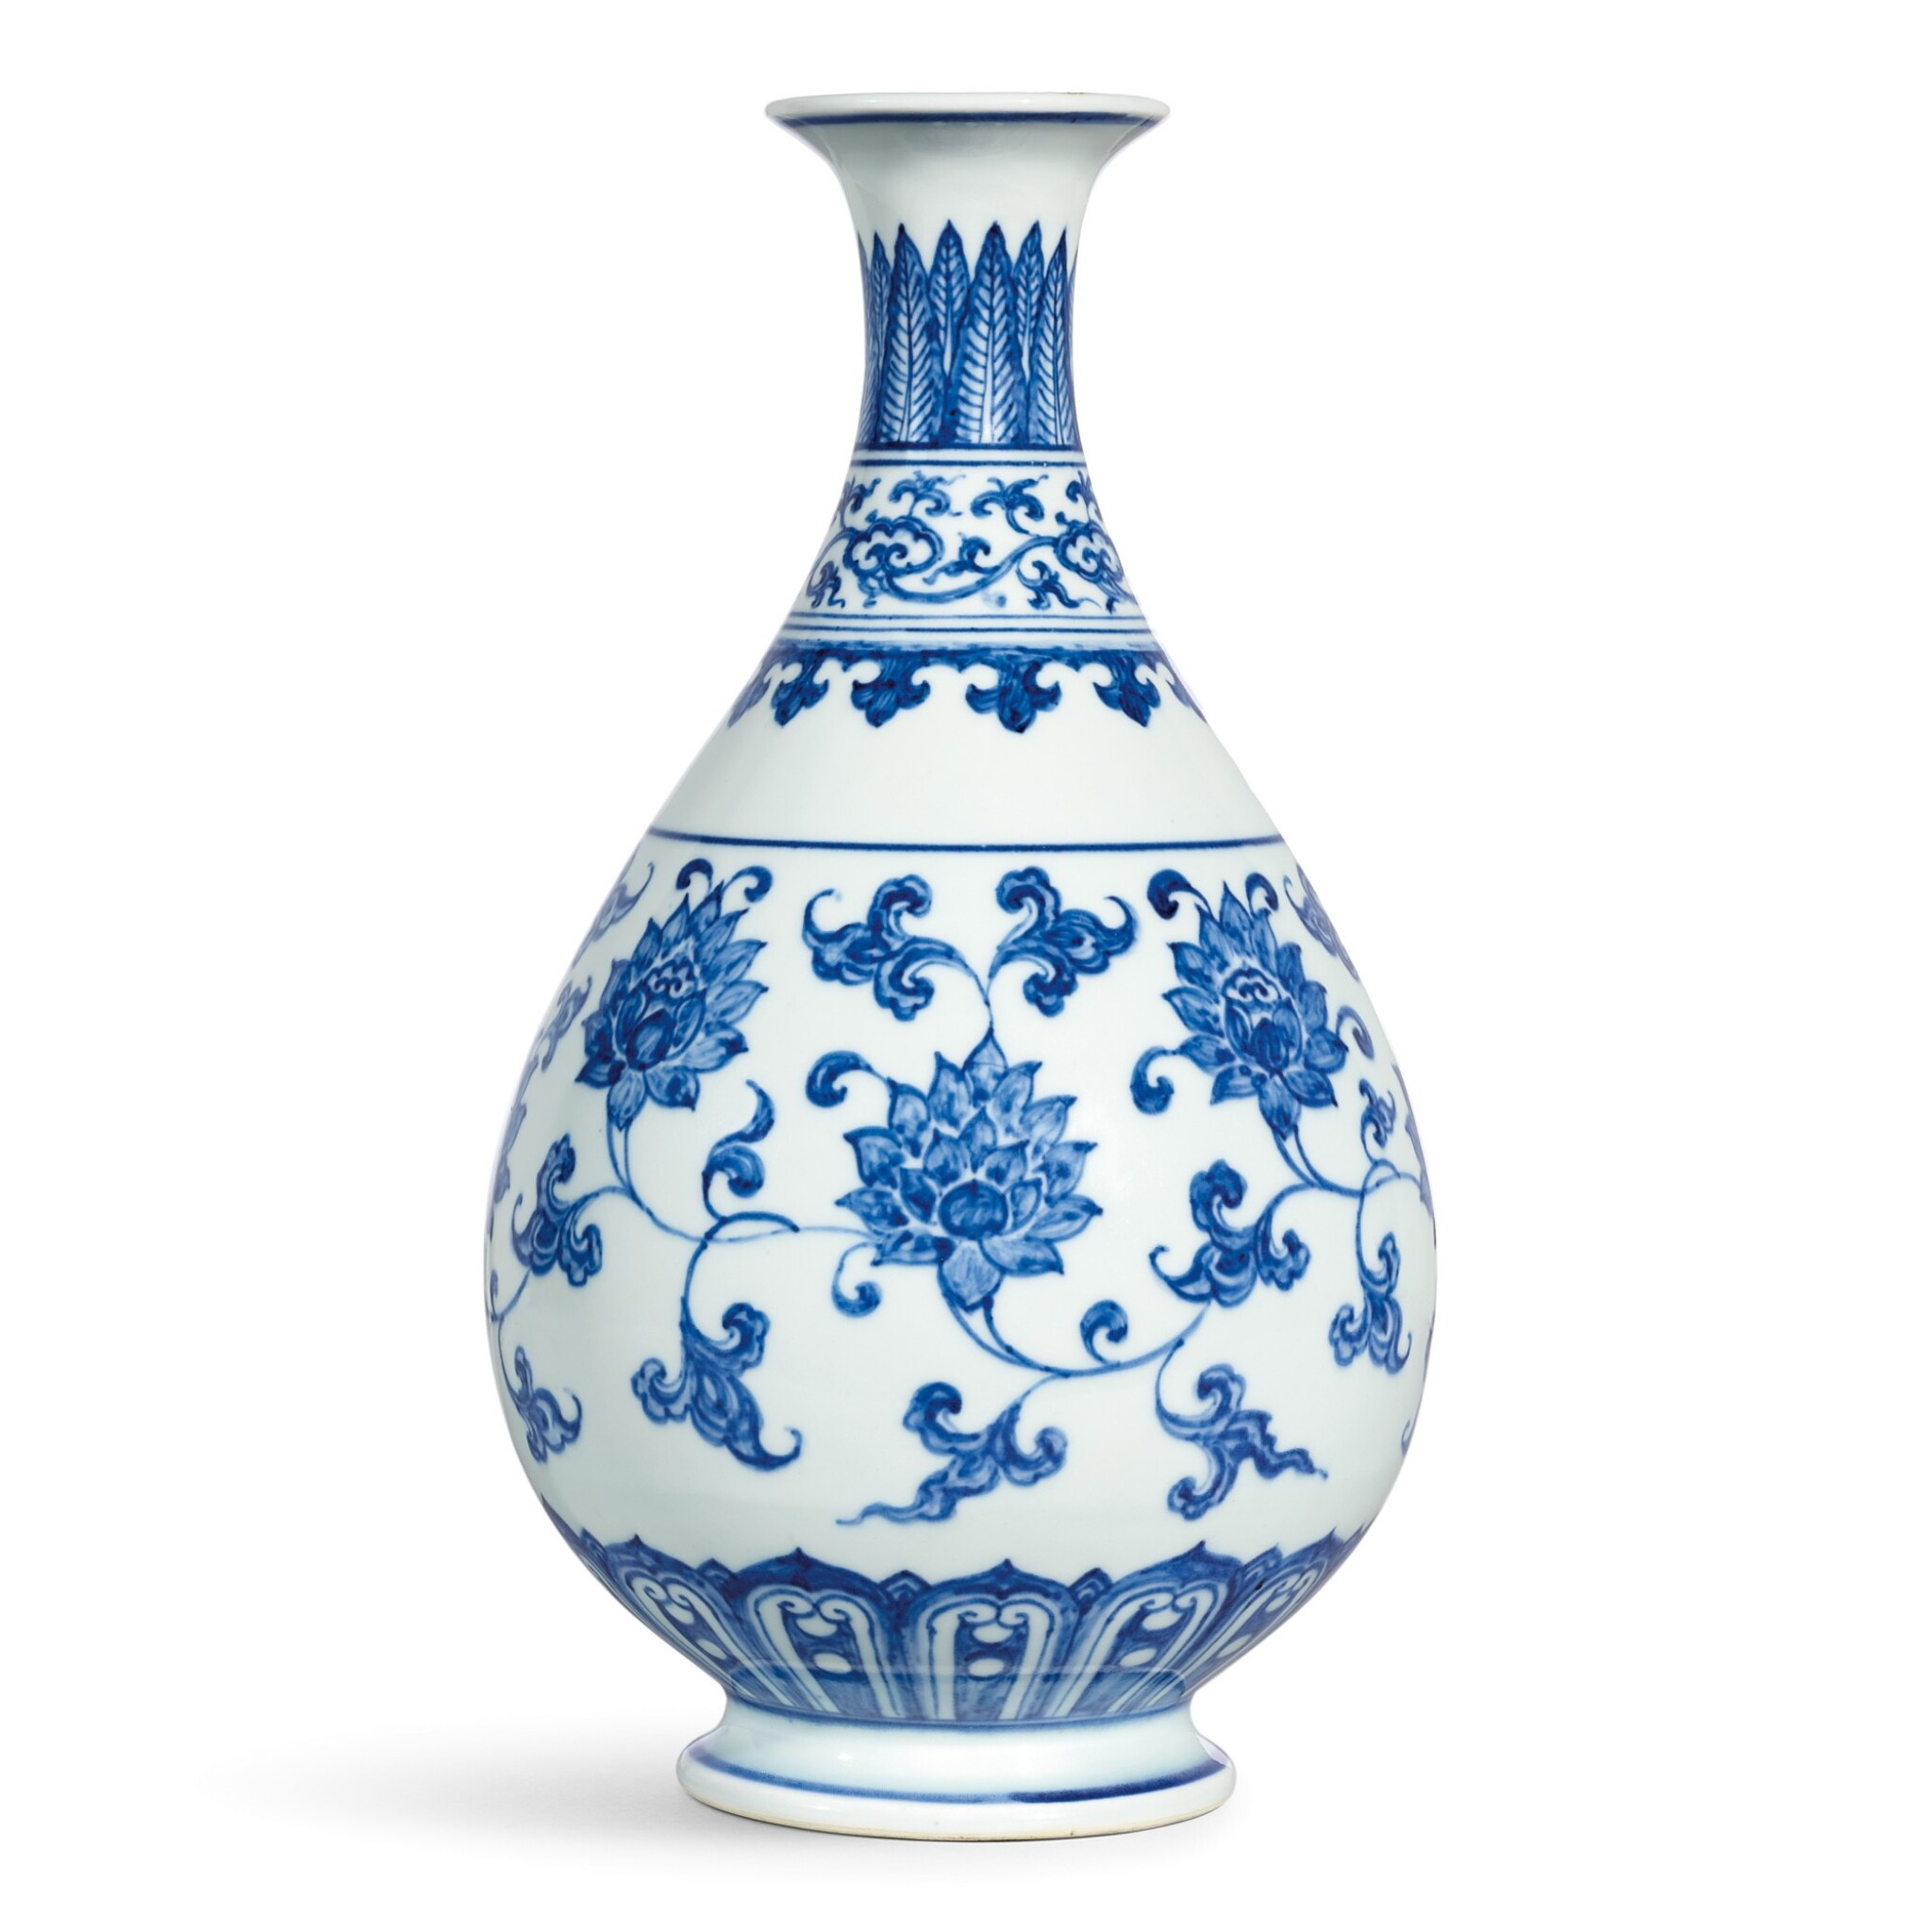 View full screen - View 1 of Lot 3609. AN EXTREMELY RARE AND SUPERB BLUE AND WHITE 'LOTUS SCROLL' VASE, YUHUCHUNPING MING DYNASTY, CHENGHUA PERIOD   明成化 青花纏枝番蓮紋玉壺春瓶.